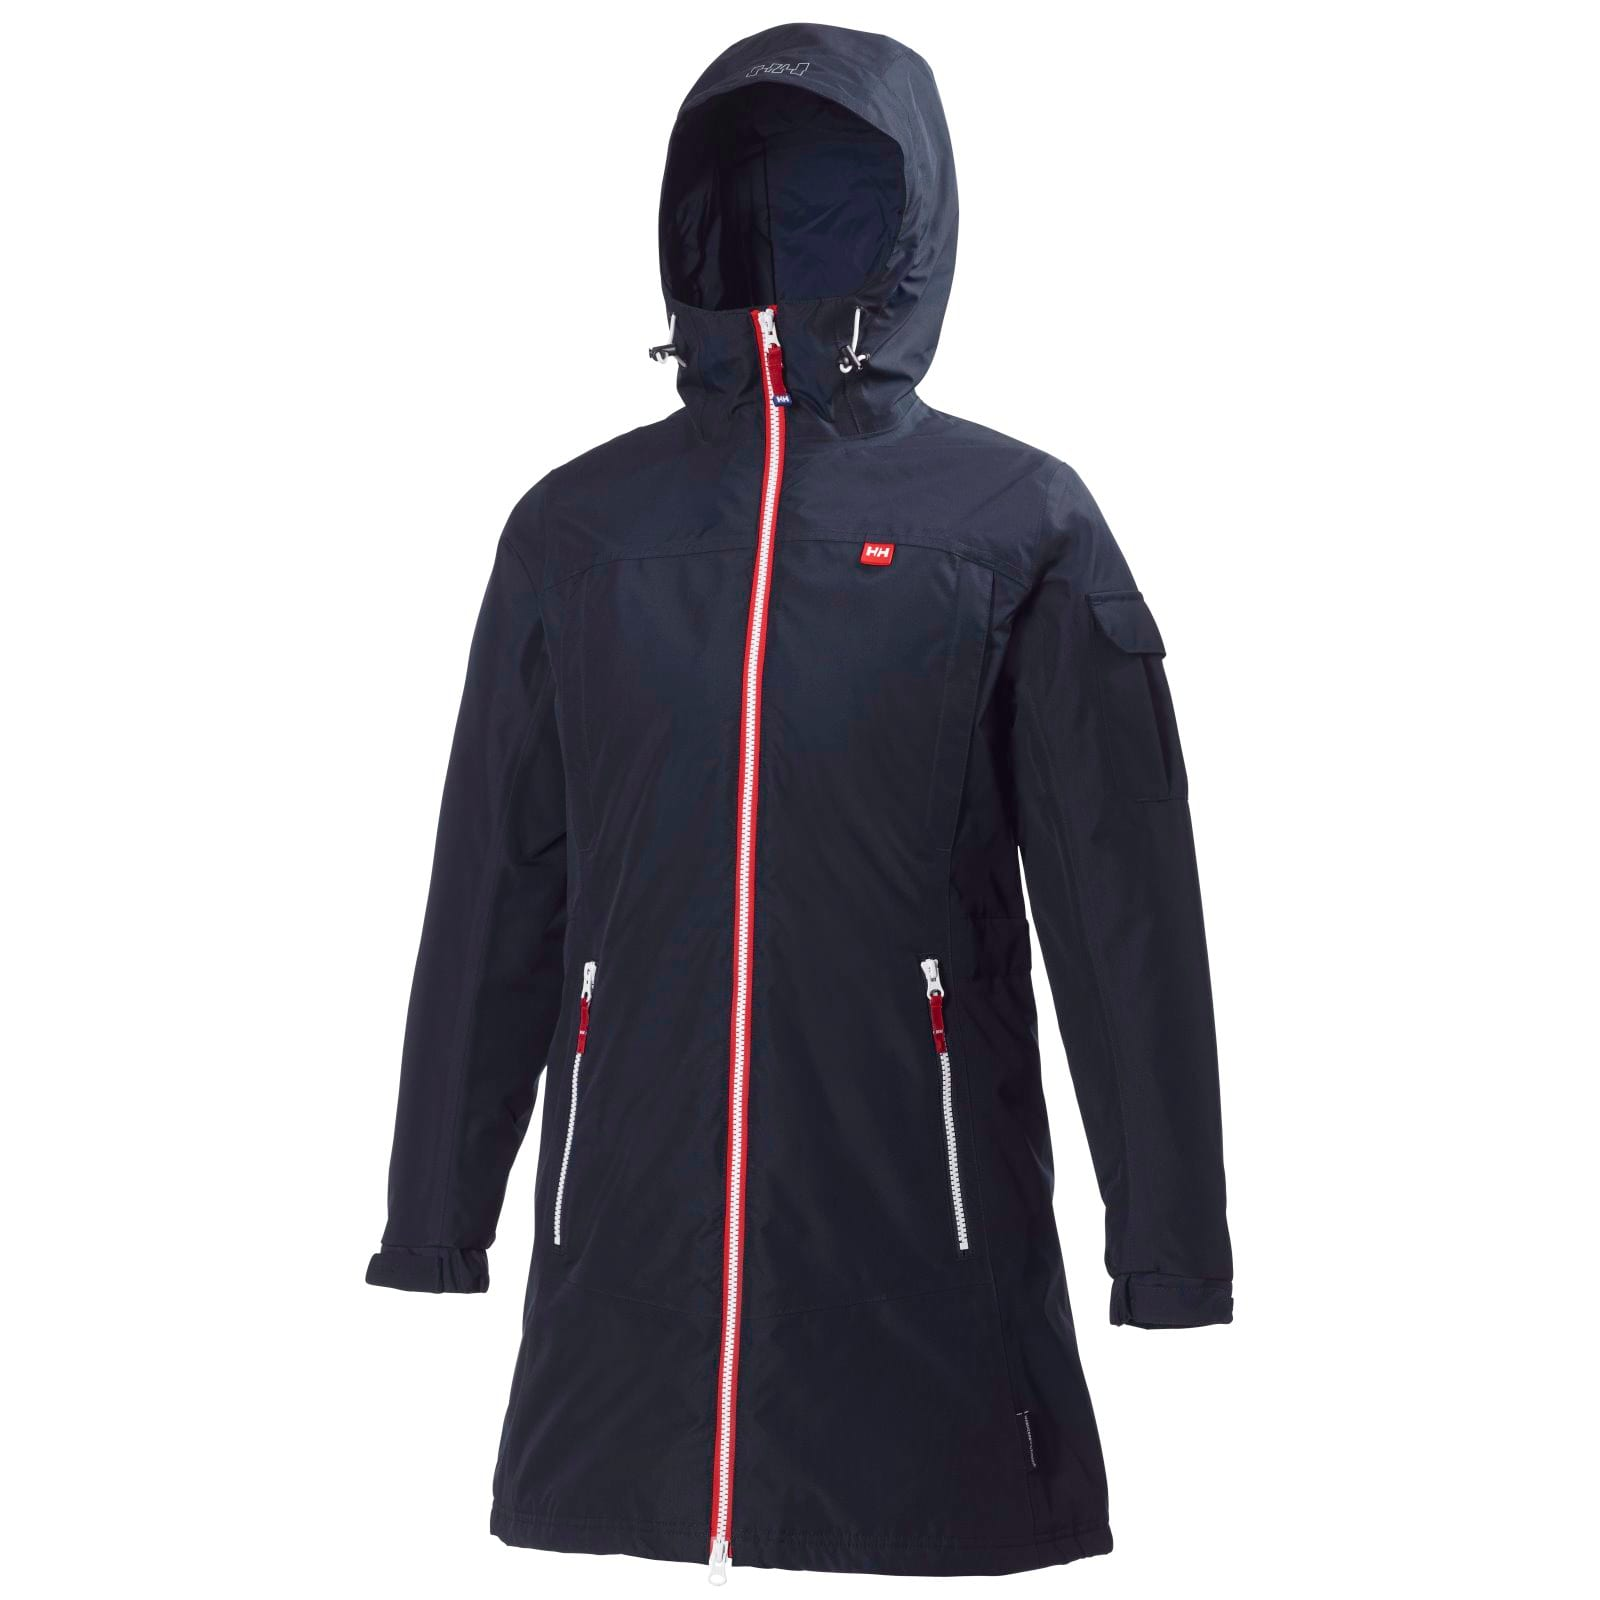 Kjøp Helly Hansen Women's Long Insulated Bykle fra Outnorth